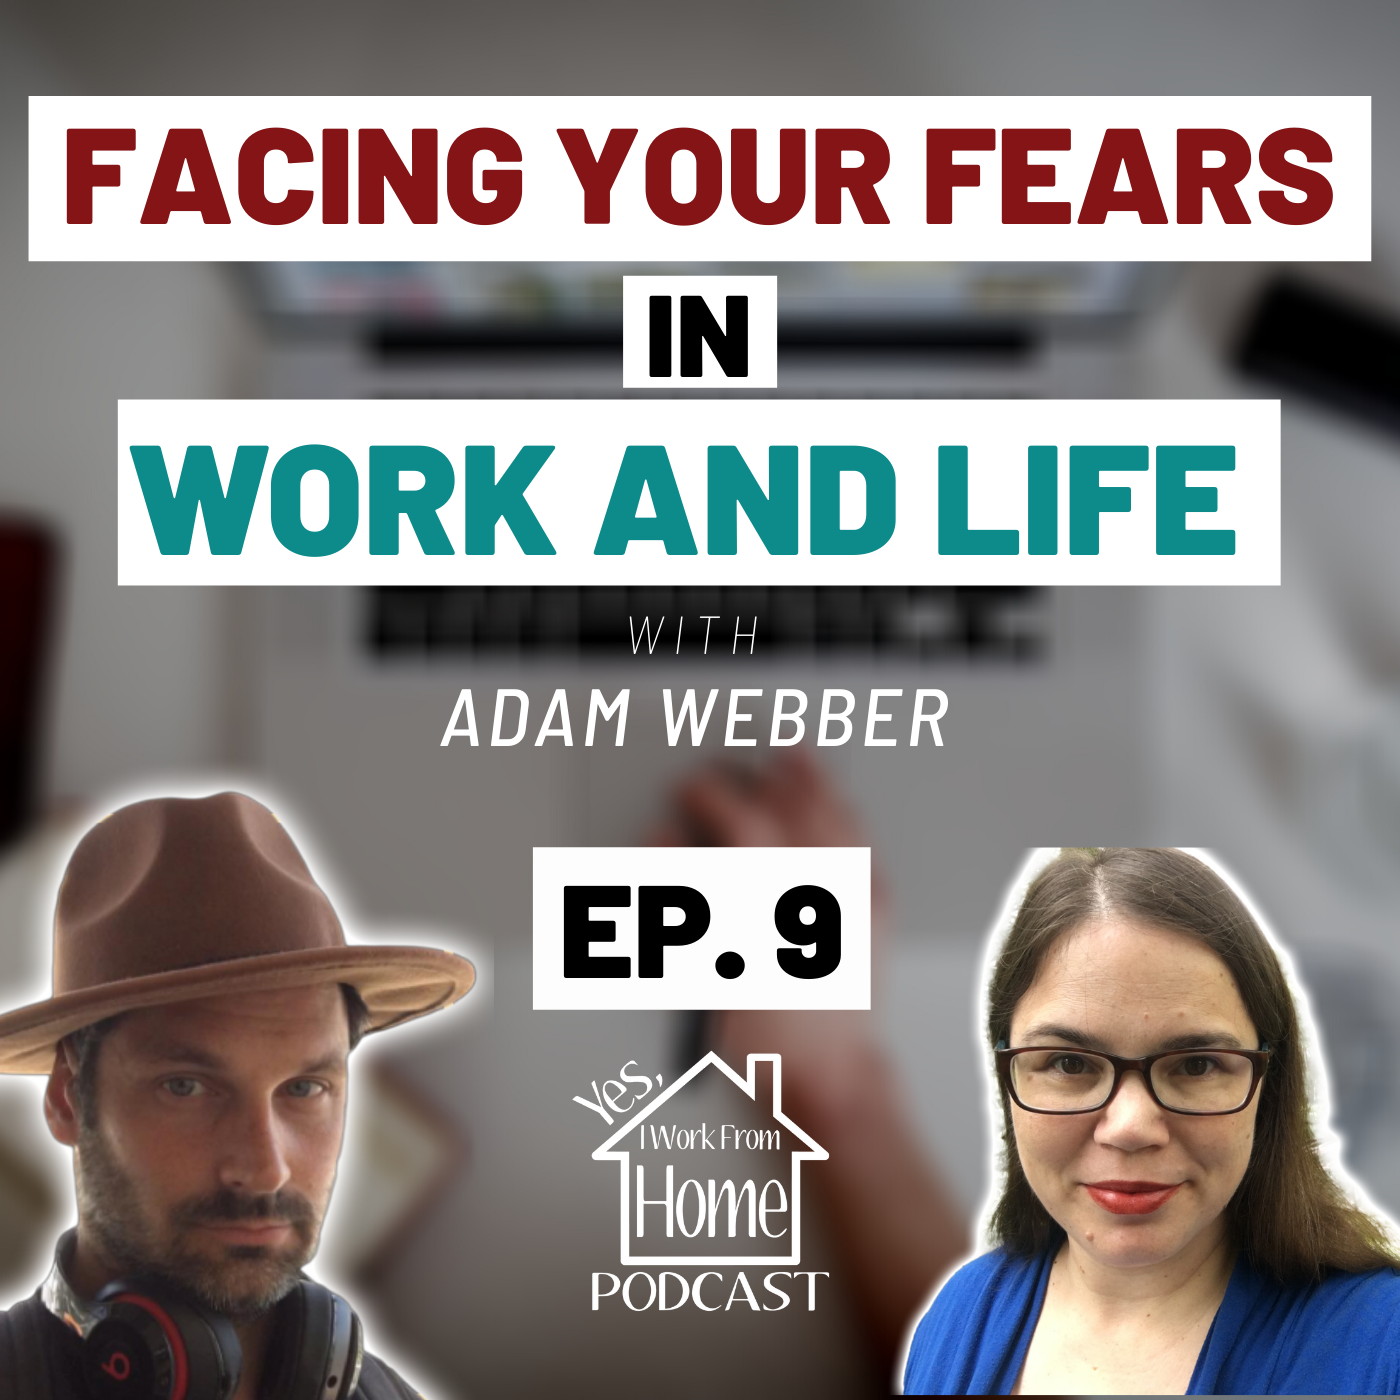 Artwork for podcast Yes, I Work From Home